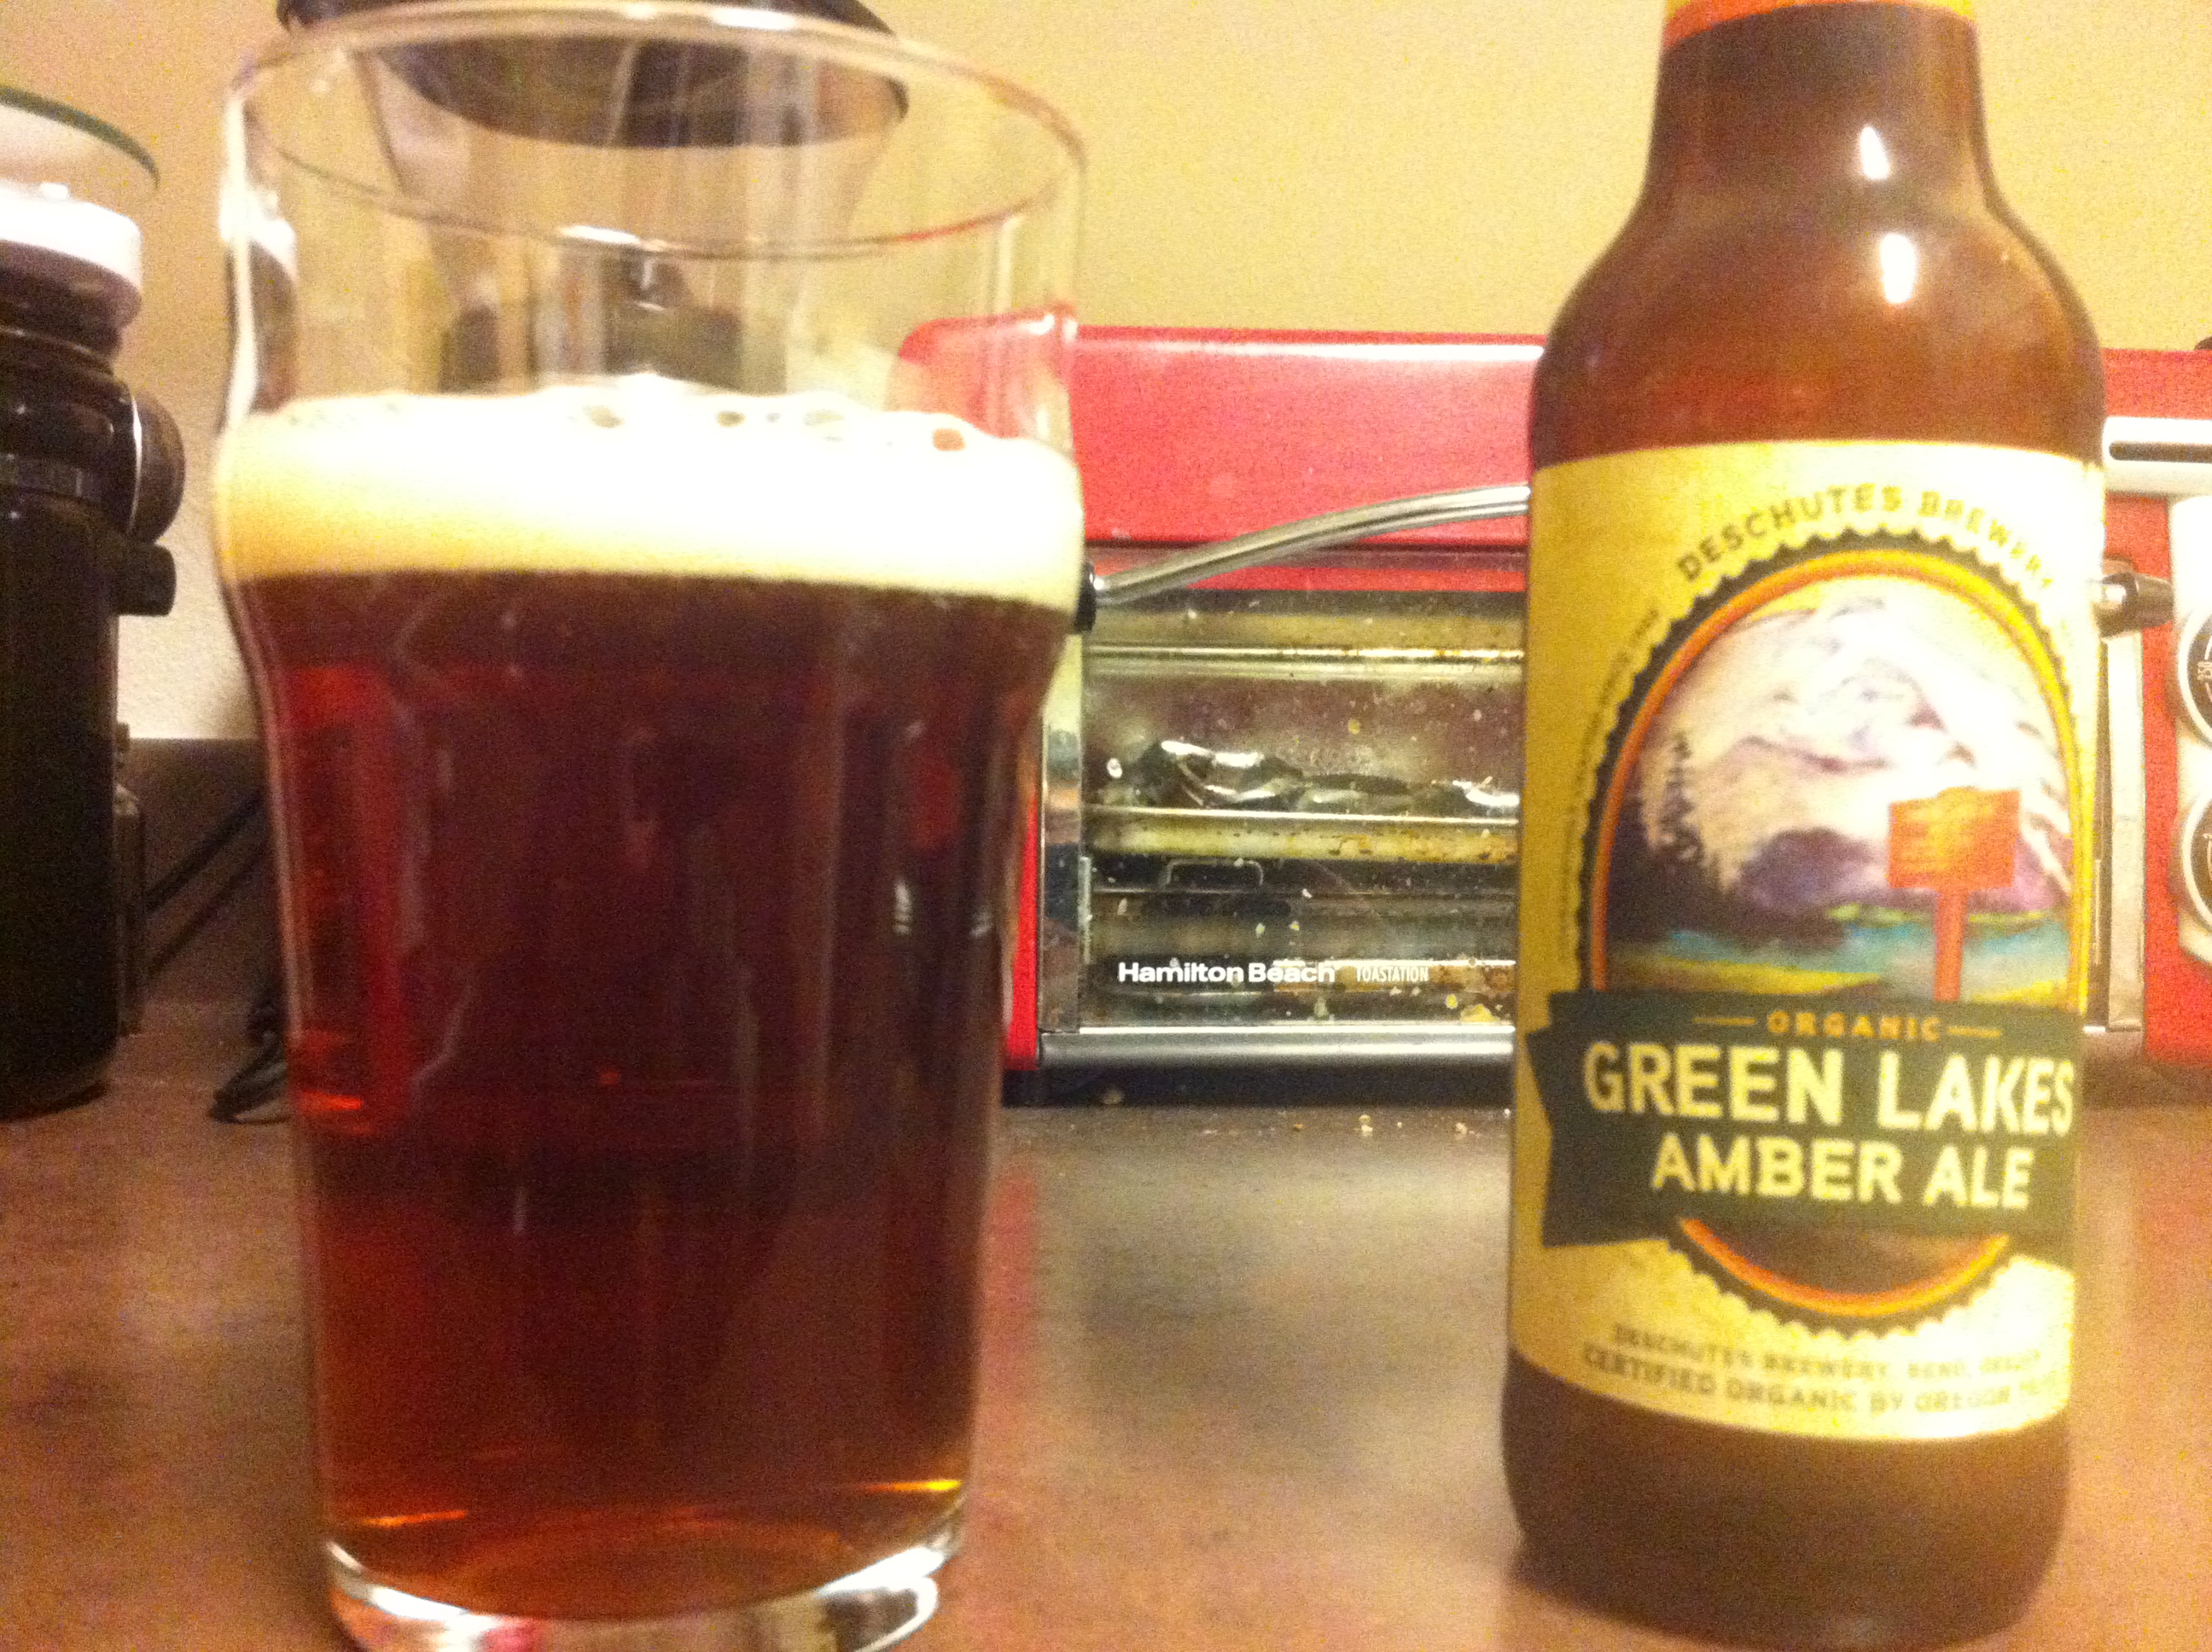 Deschutes Brewery: Green Lakes Amber Ale (Organic)